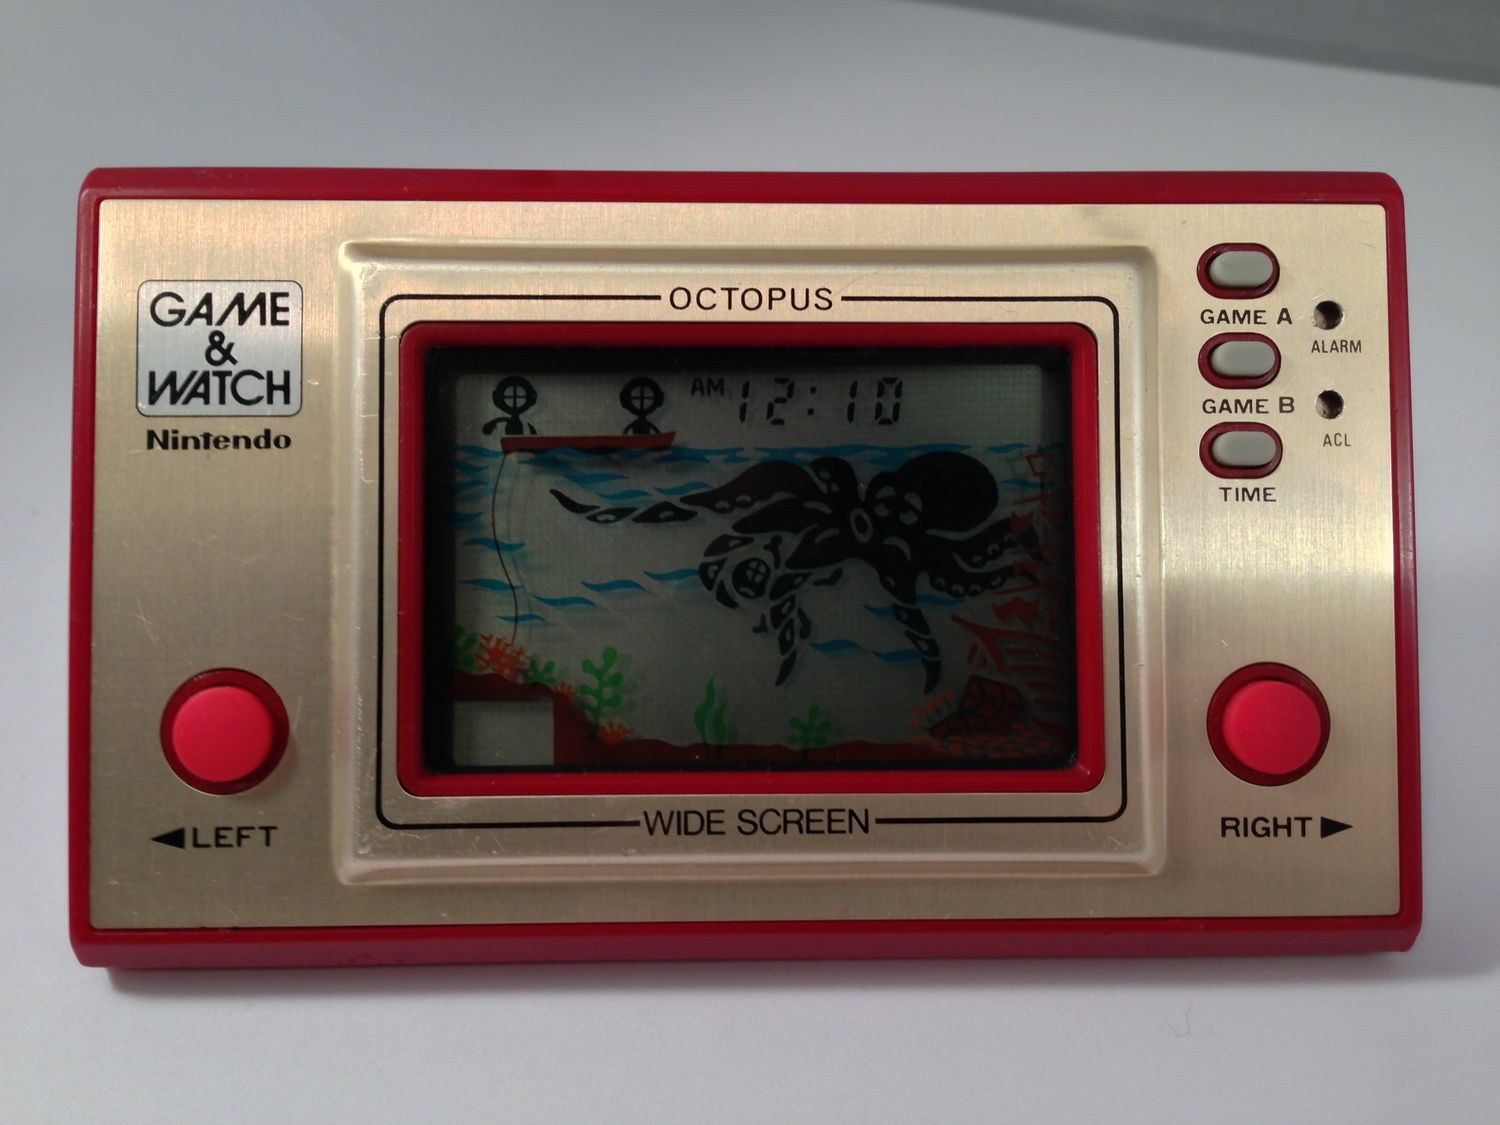 Nintendo Game & Watch - Octopus -Video Game (OC-22, 1981 ...